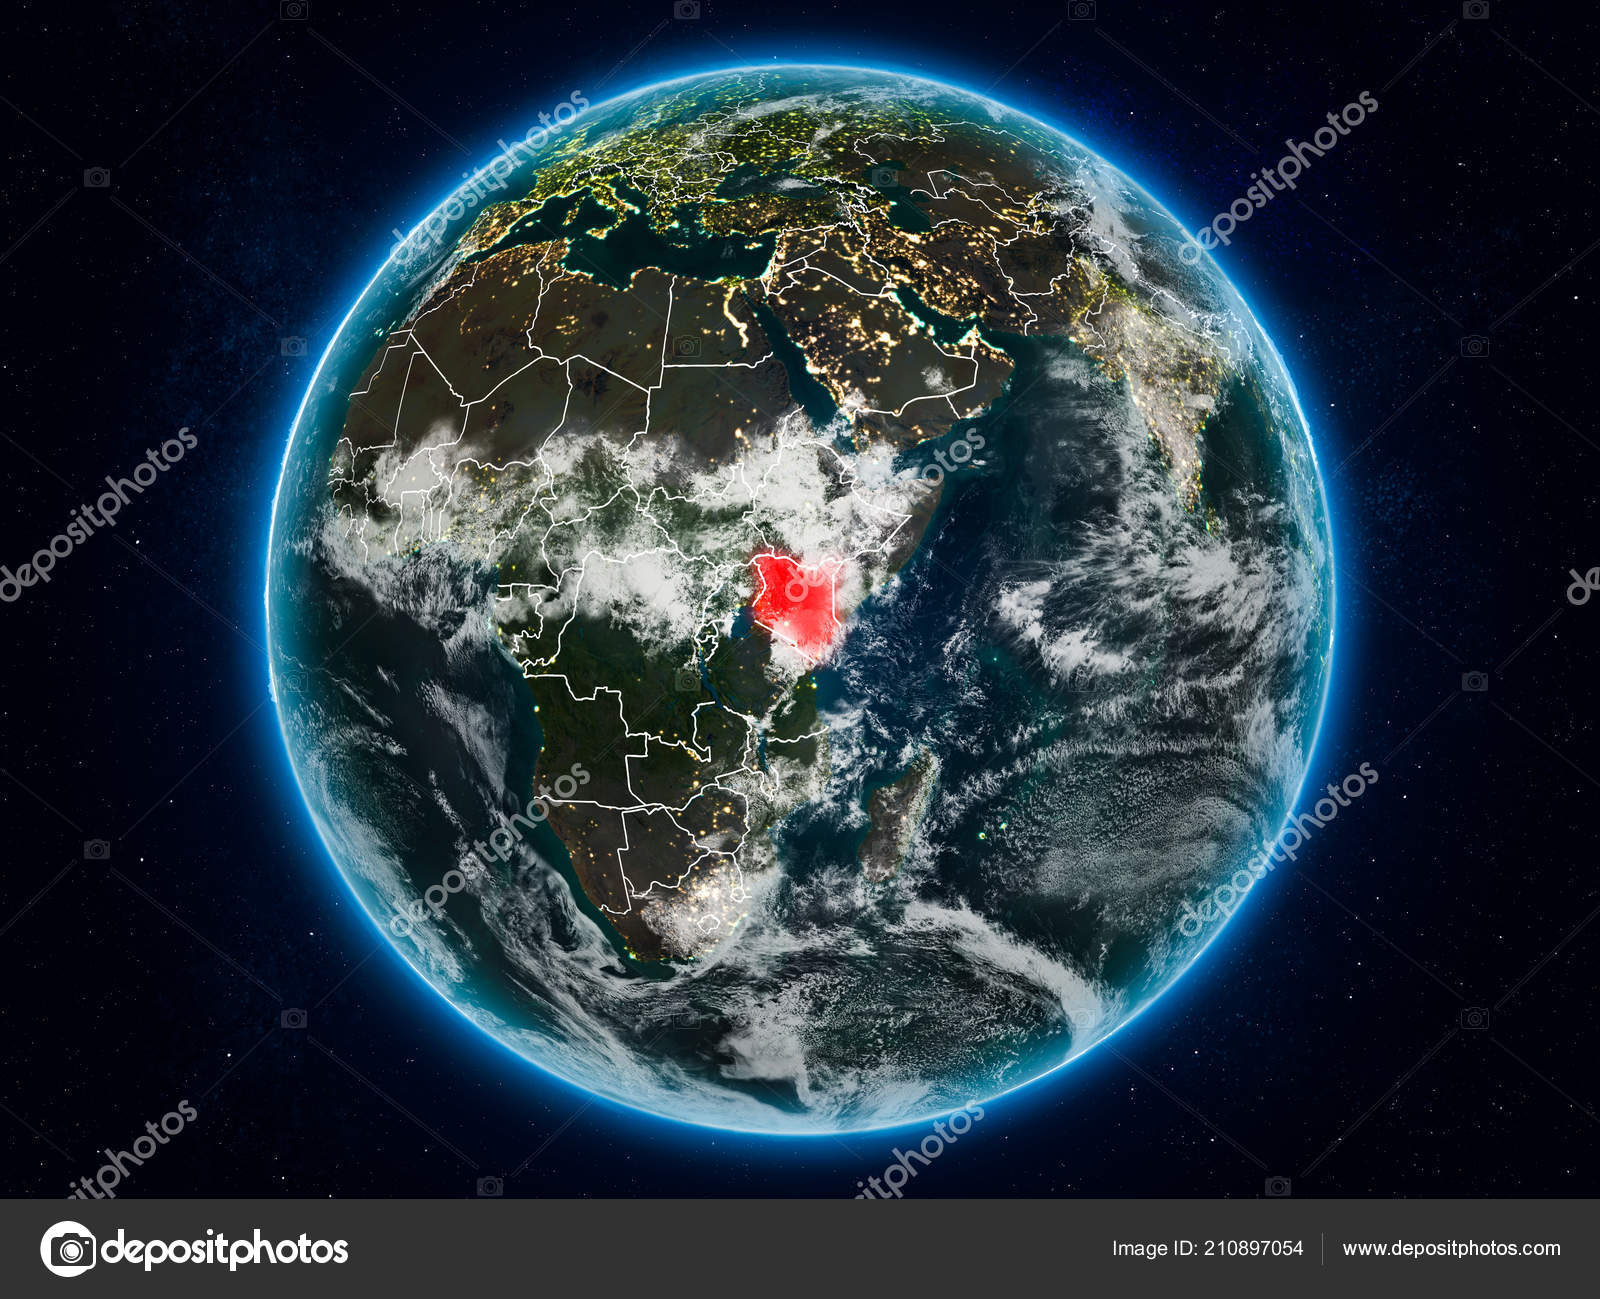 Kenya Space Planet Earth Night Visible Country Borders